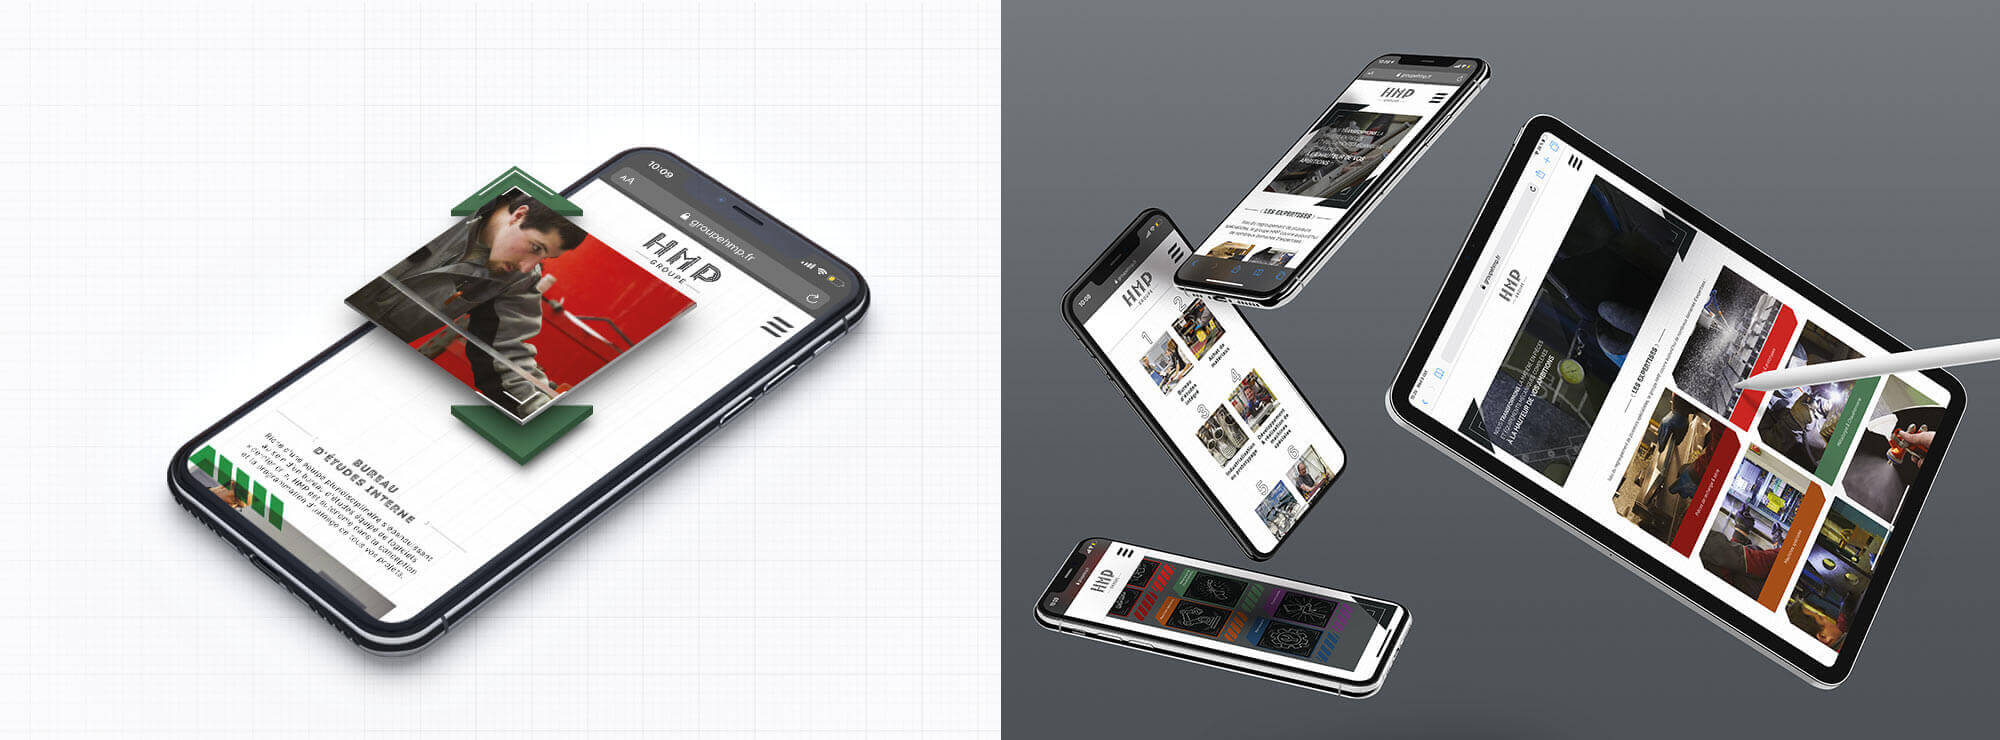 05 hmp mobile iphone 3d ecran machines volume.jpg